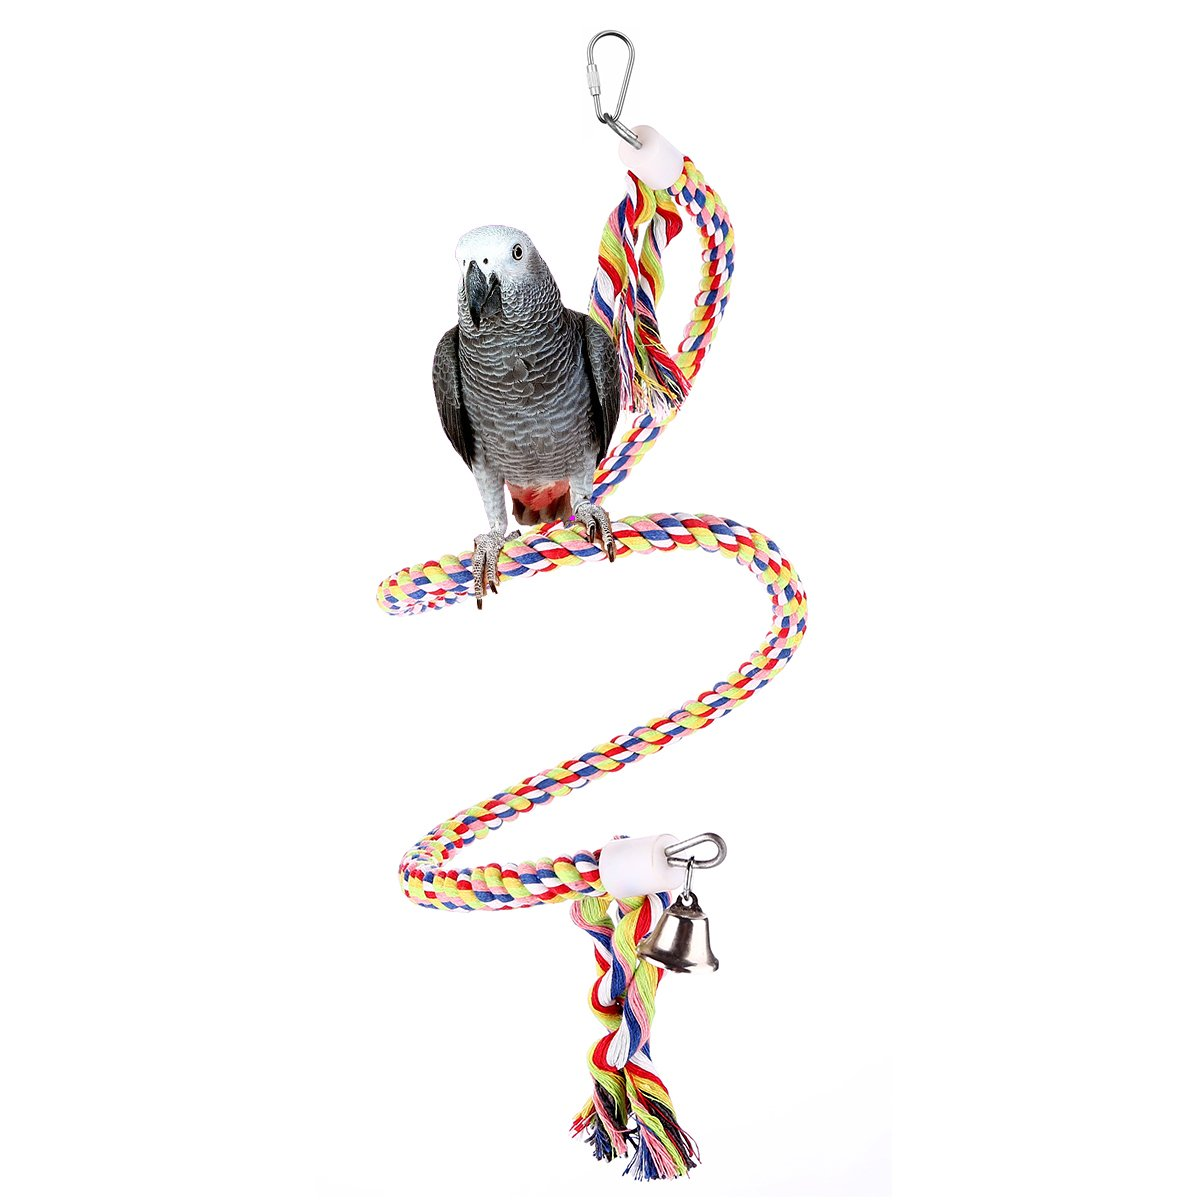 Popular Brand 10pcs Parrot Rattan Ball Toys Pet Bird Chewing Toys Hanging Cockatiel Parakeet Climb Chewing Cage Birdcage Decor Pet Supplies Complete Range Of Articles Home & Garden